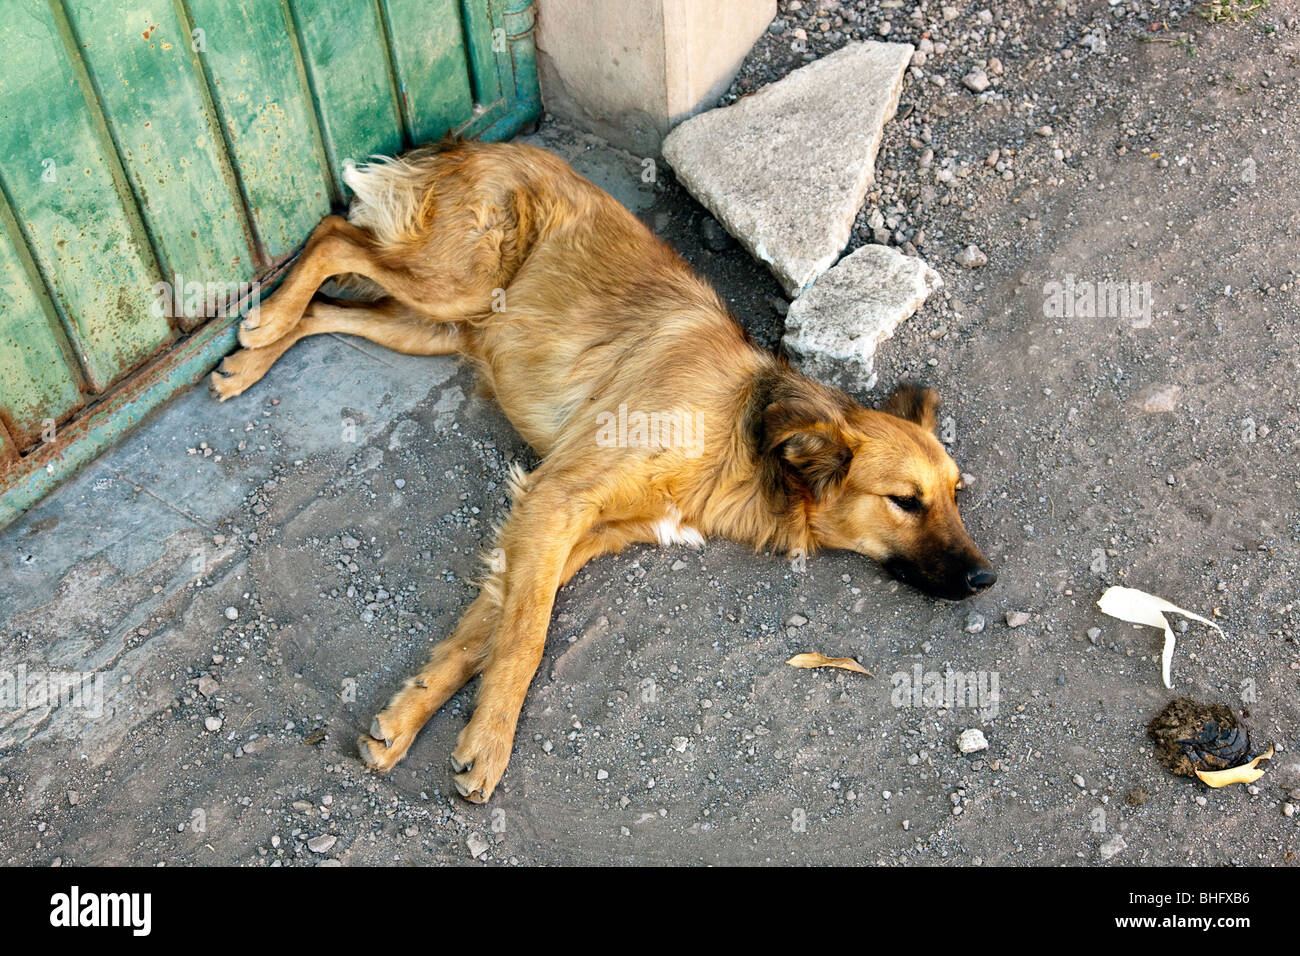 Mexican Dog Stock Photos & Mexican Dog Stock Images - Alamy